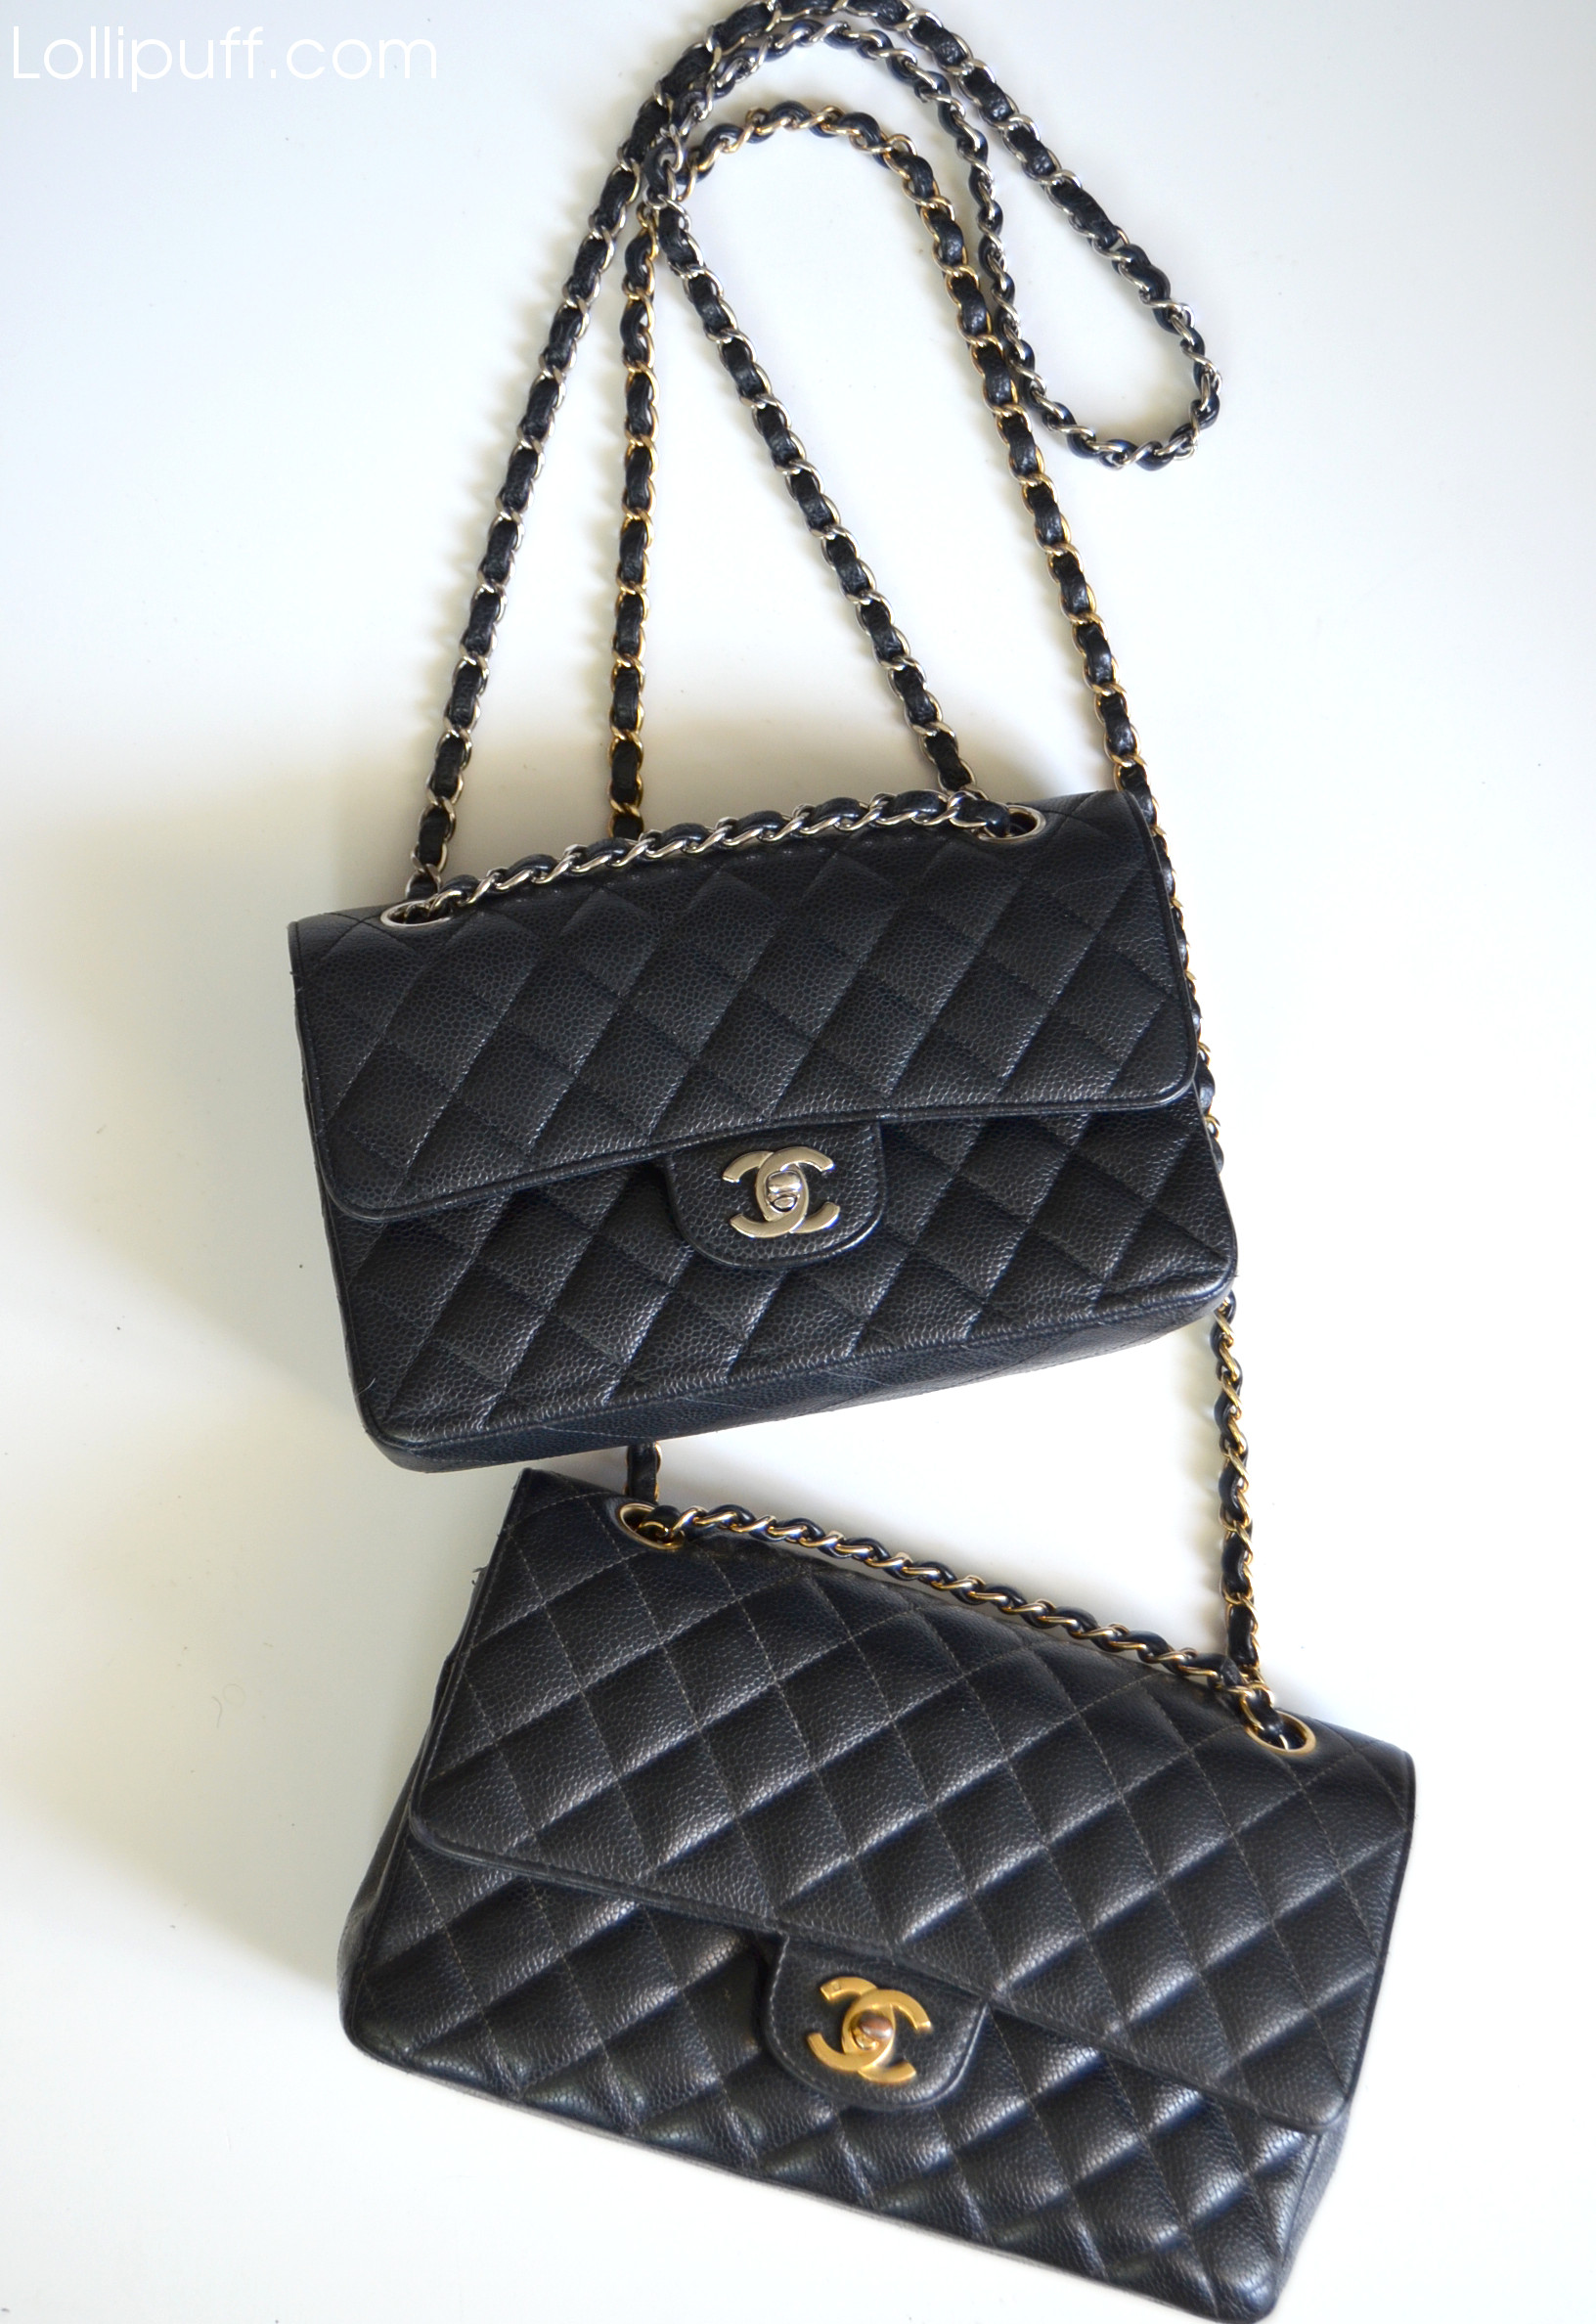 af5b8f0ff40f Chanel Classic Double Flap: Small vs Medium & Gold vs Silver | Lollipuff